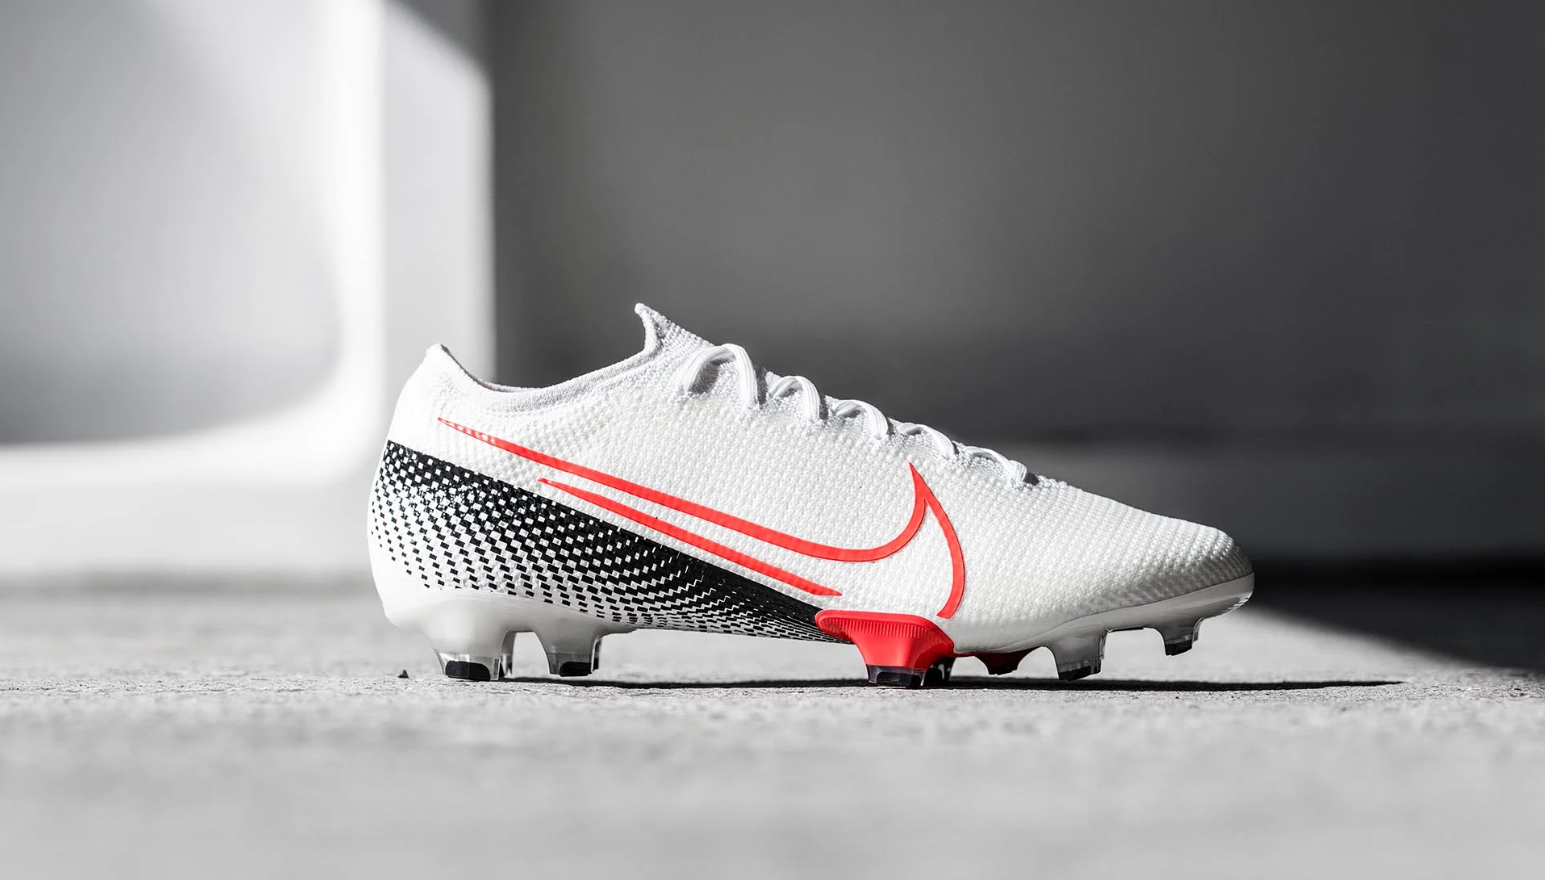 Nike Mercurial Vapor 13 Elite FG Future Lab II